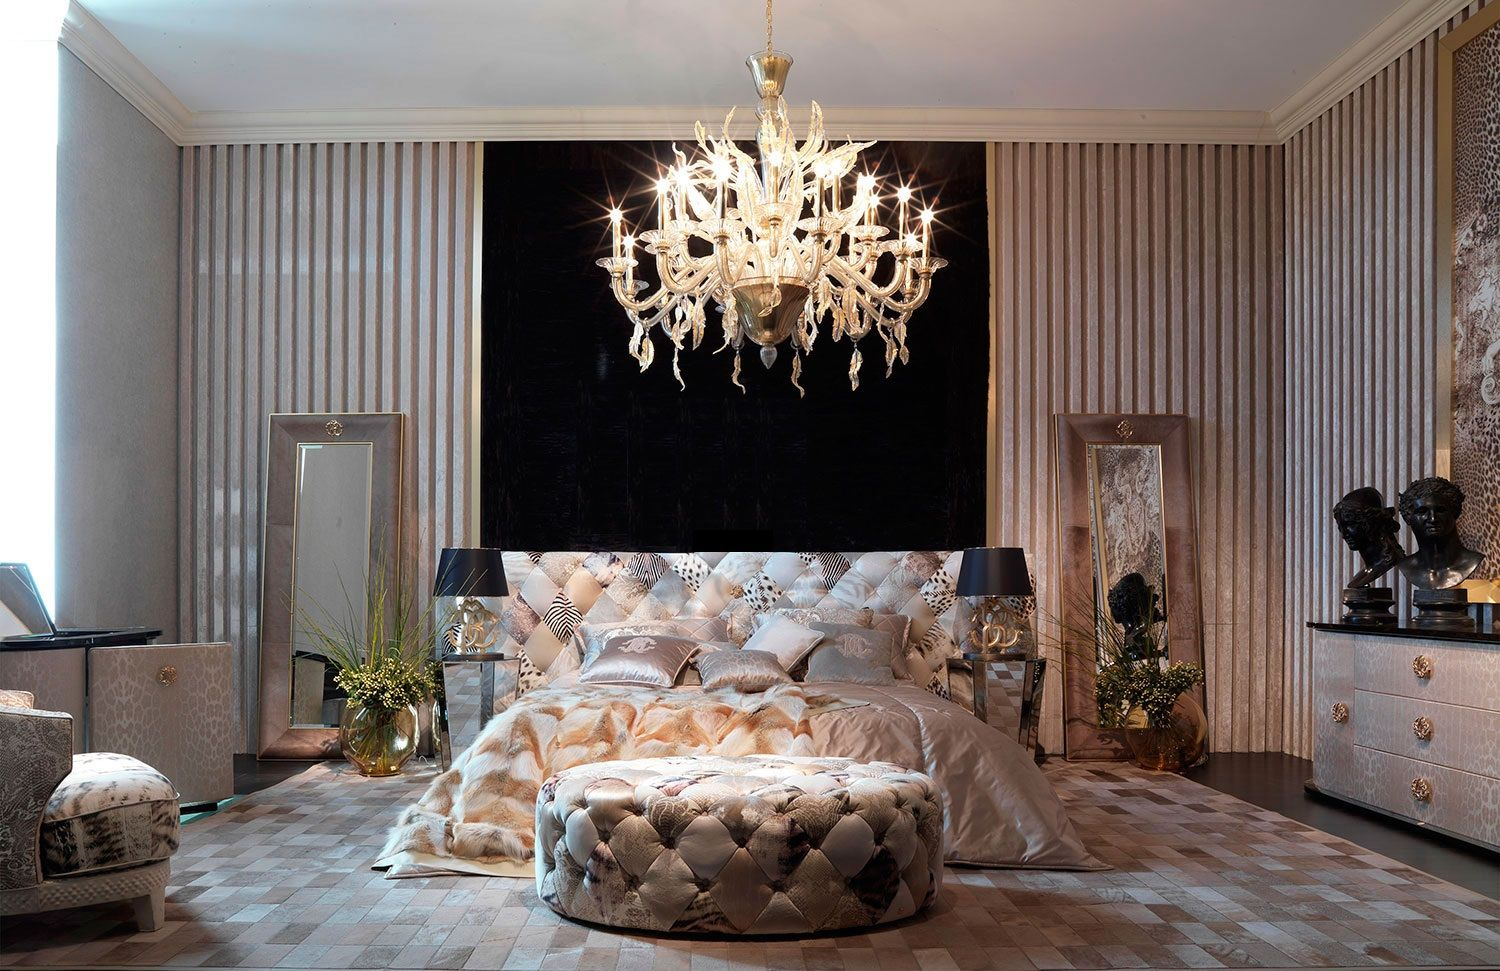 Master bedrooms decor always need a luxurious chandelier. Discover ...